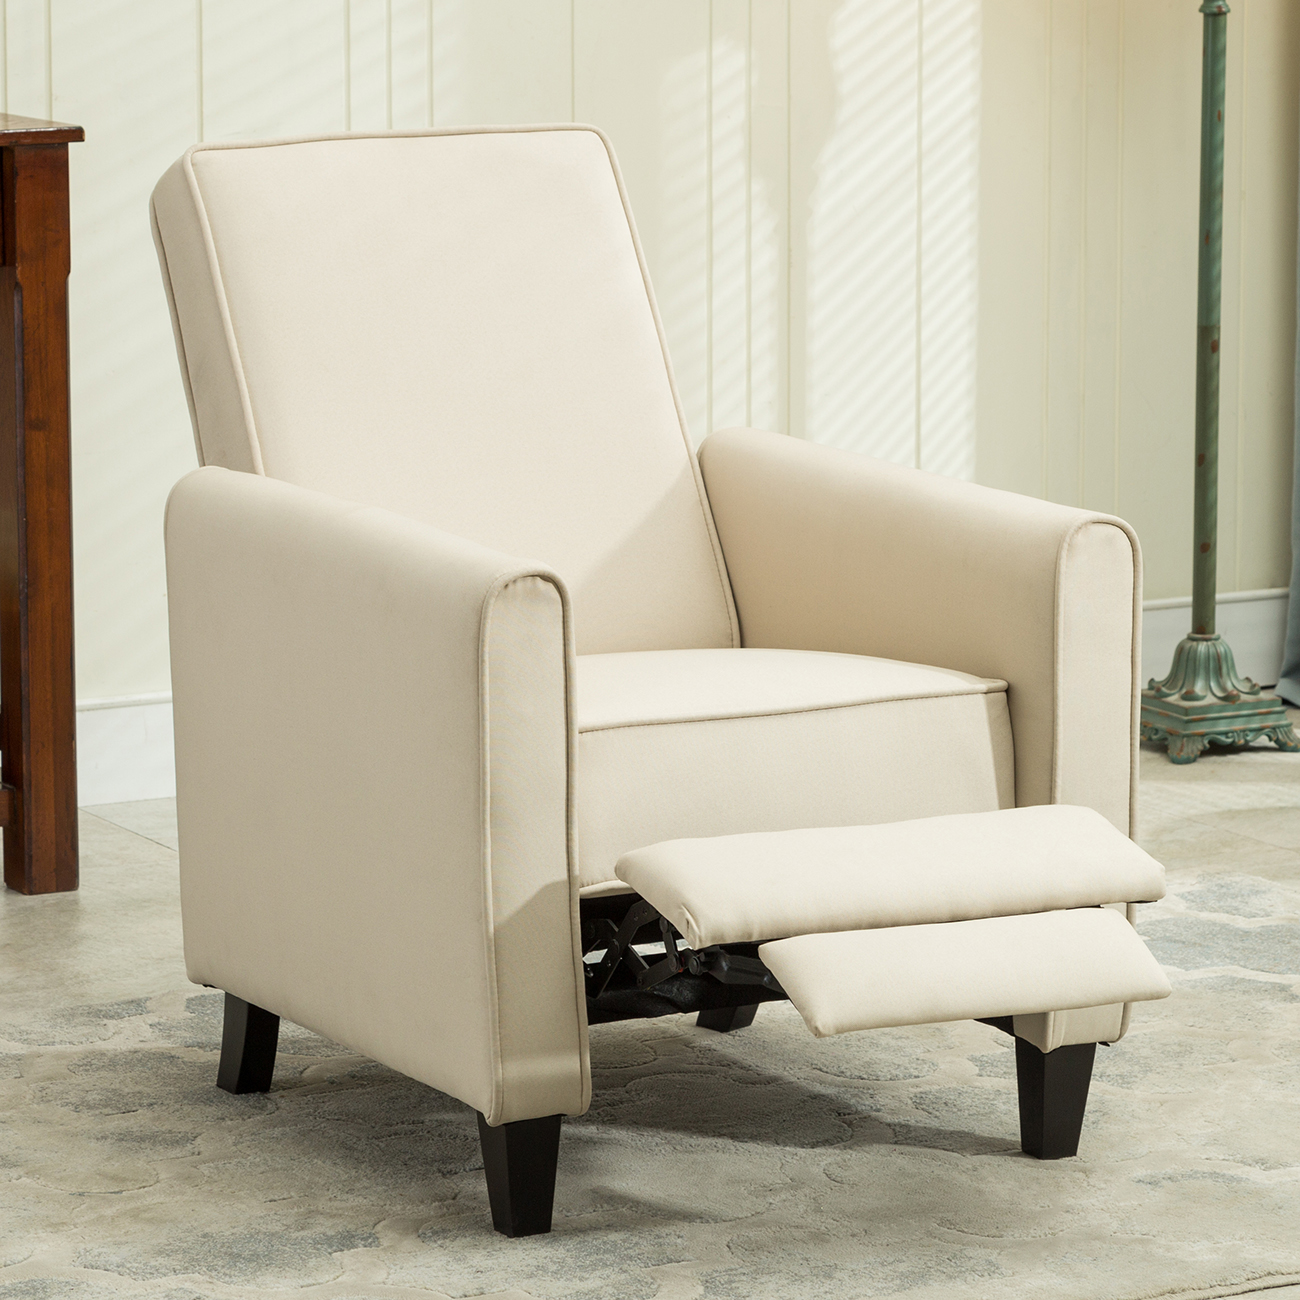 Rv Chair Recliner Chairs Living Room Rv Recline Club Chair Home